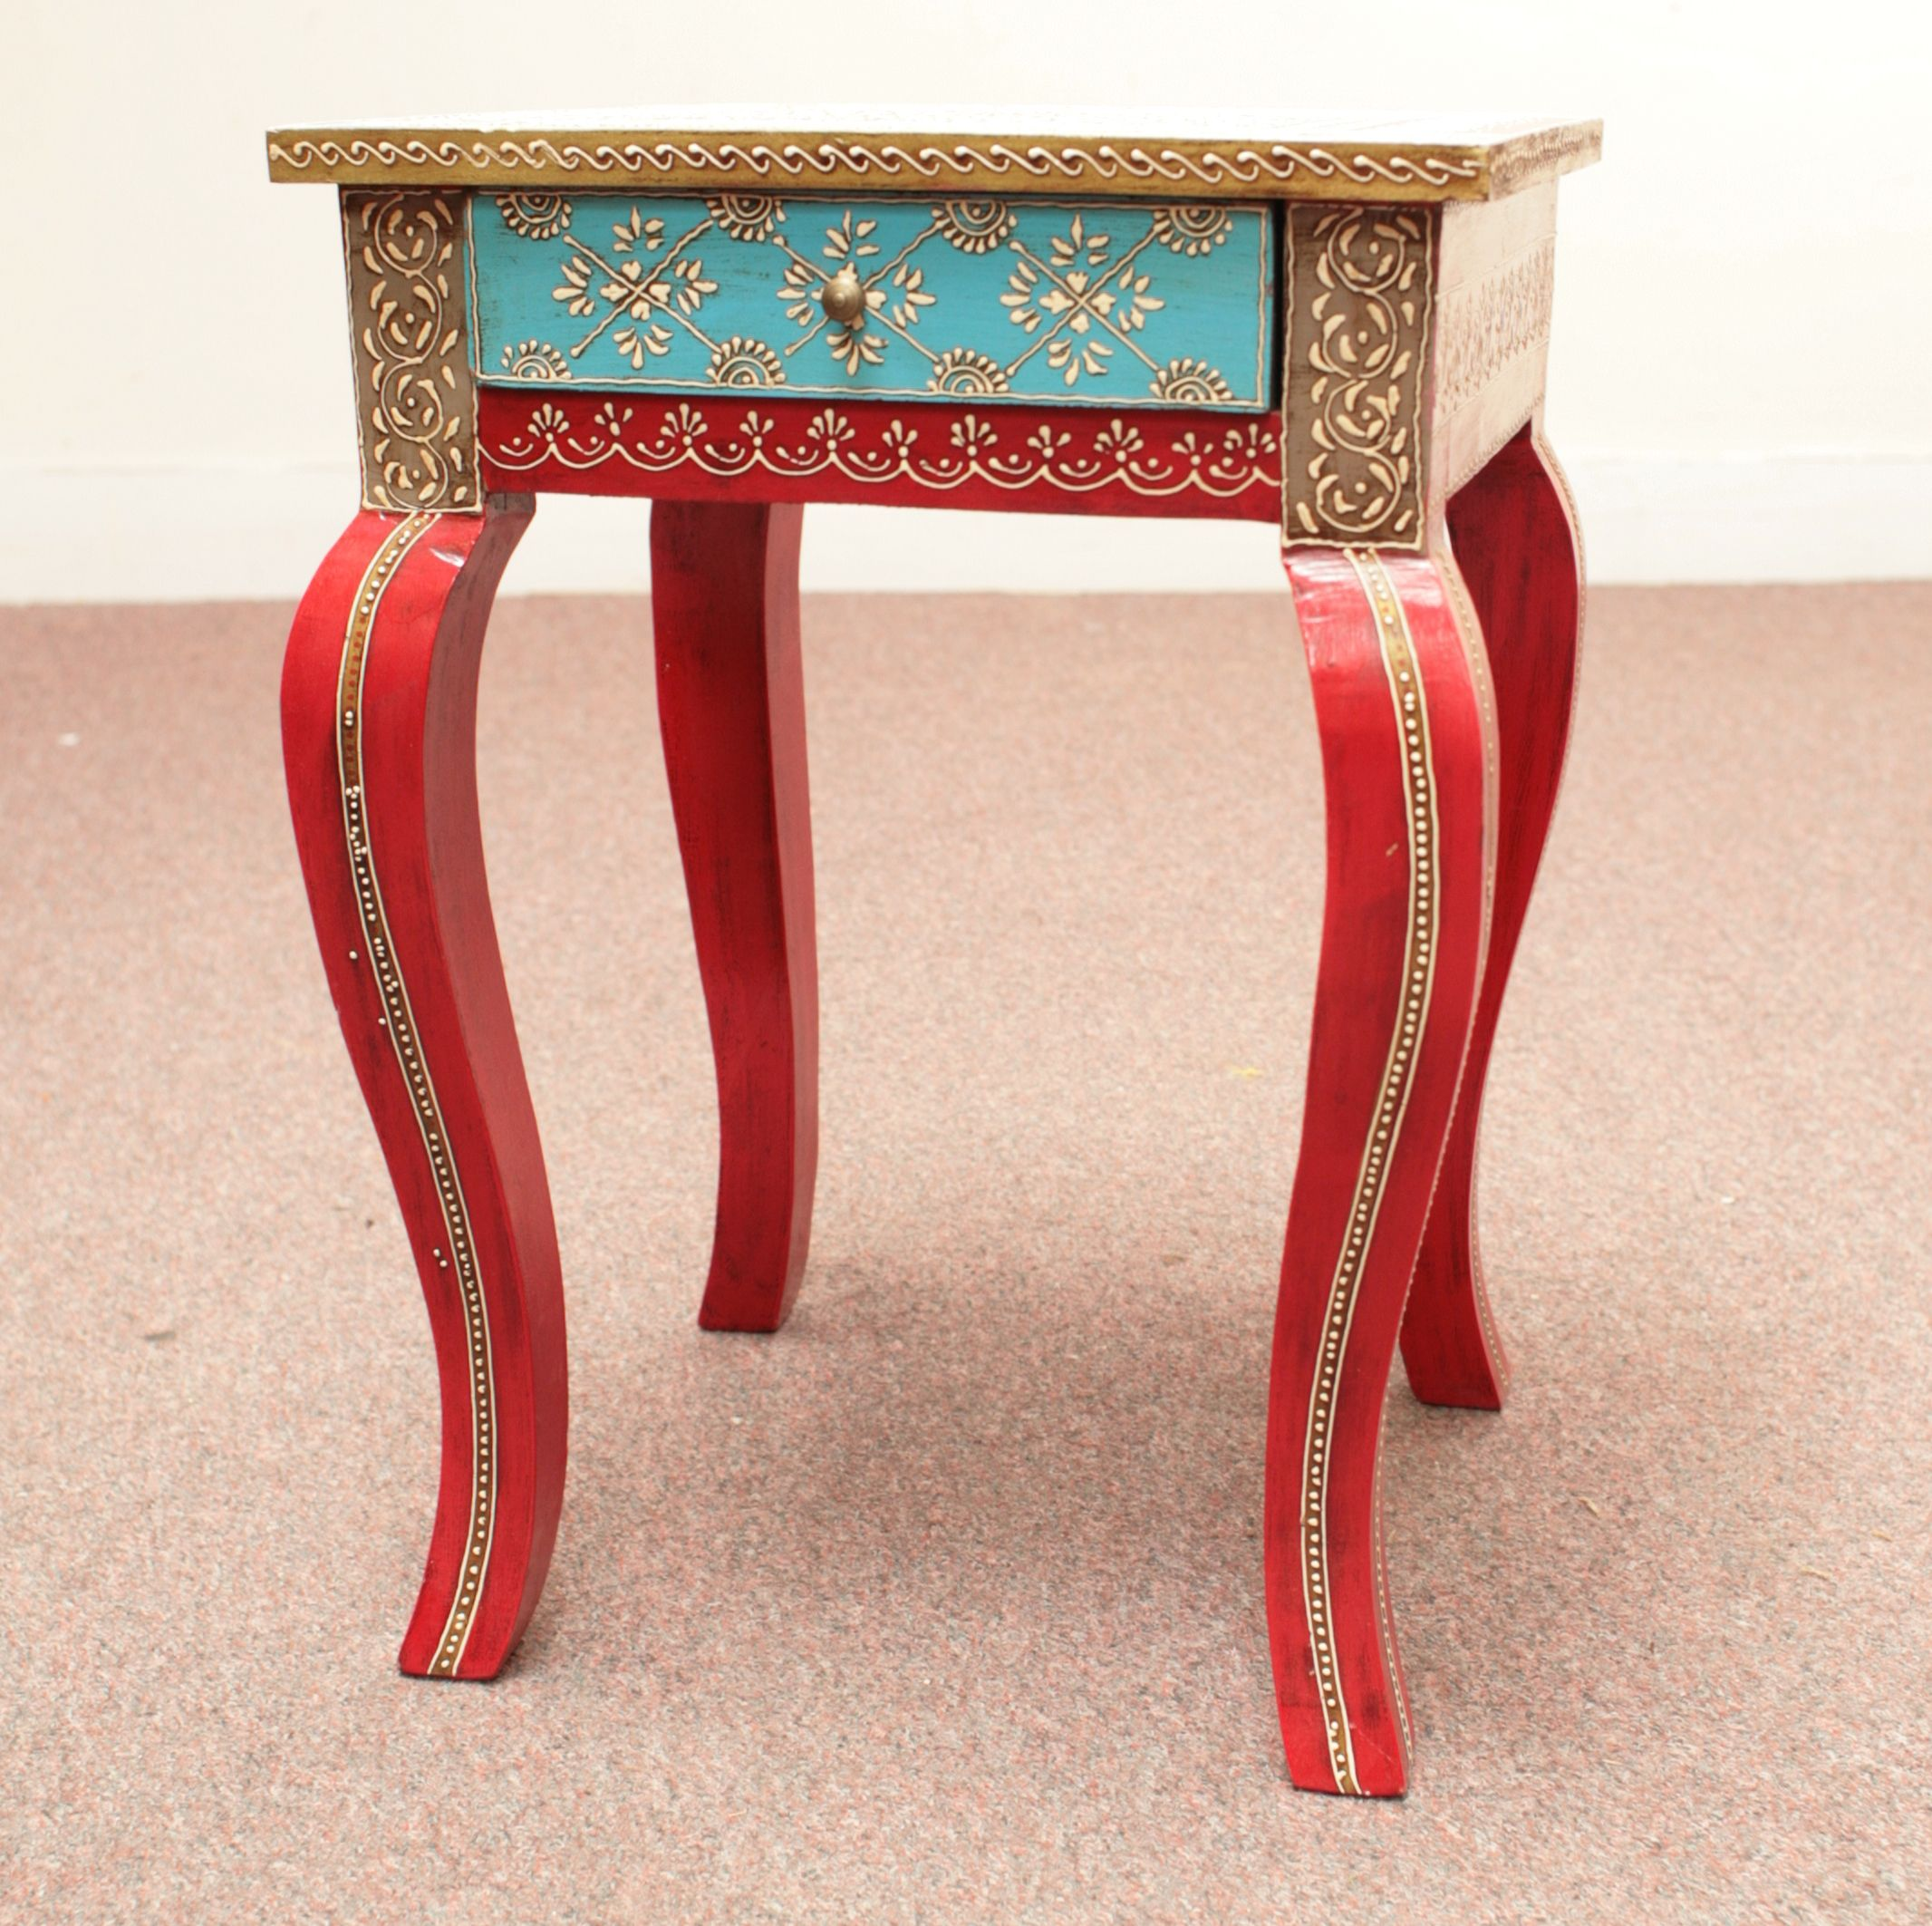 Painted Furniture from India   indian furniture  handpainted side table dsc0126. Painted Furniture from India   indian furniture handpainted side